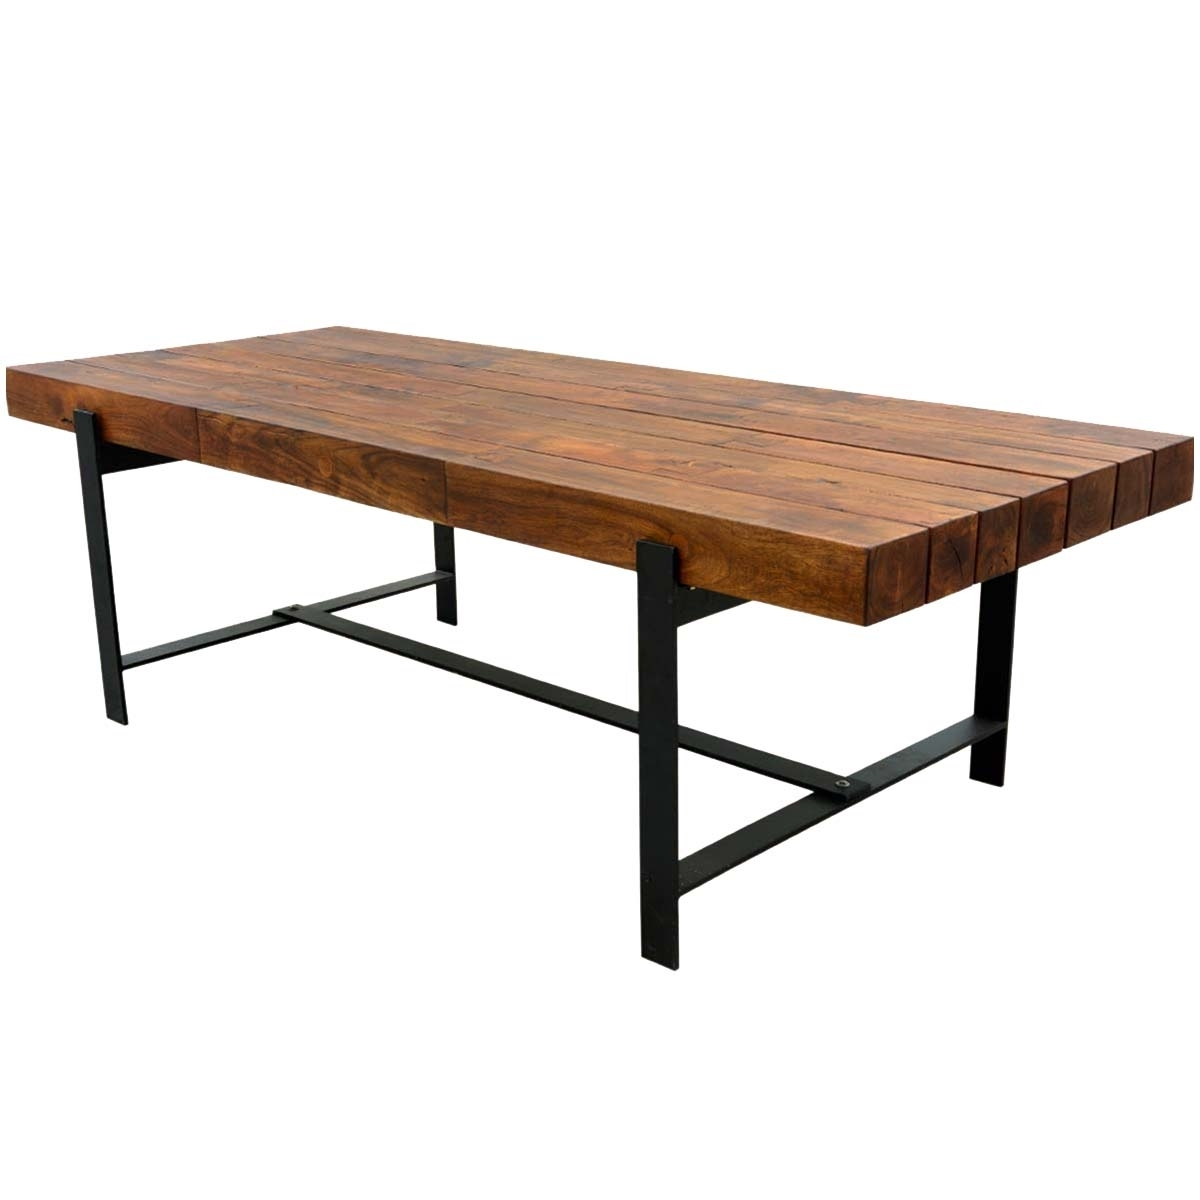 "Acacia Dining Tables In Well Known Industrial Iron & Acacia Wood 94"" Large Rustic Dining Table (View 6 of 25)"